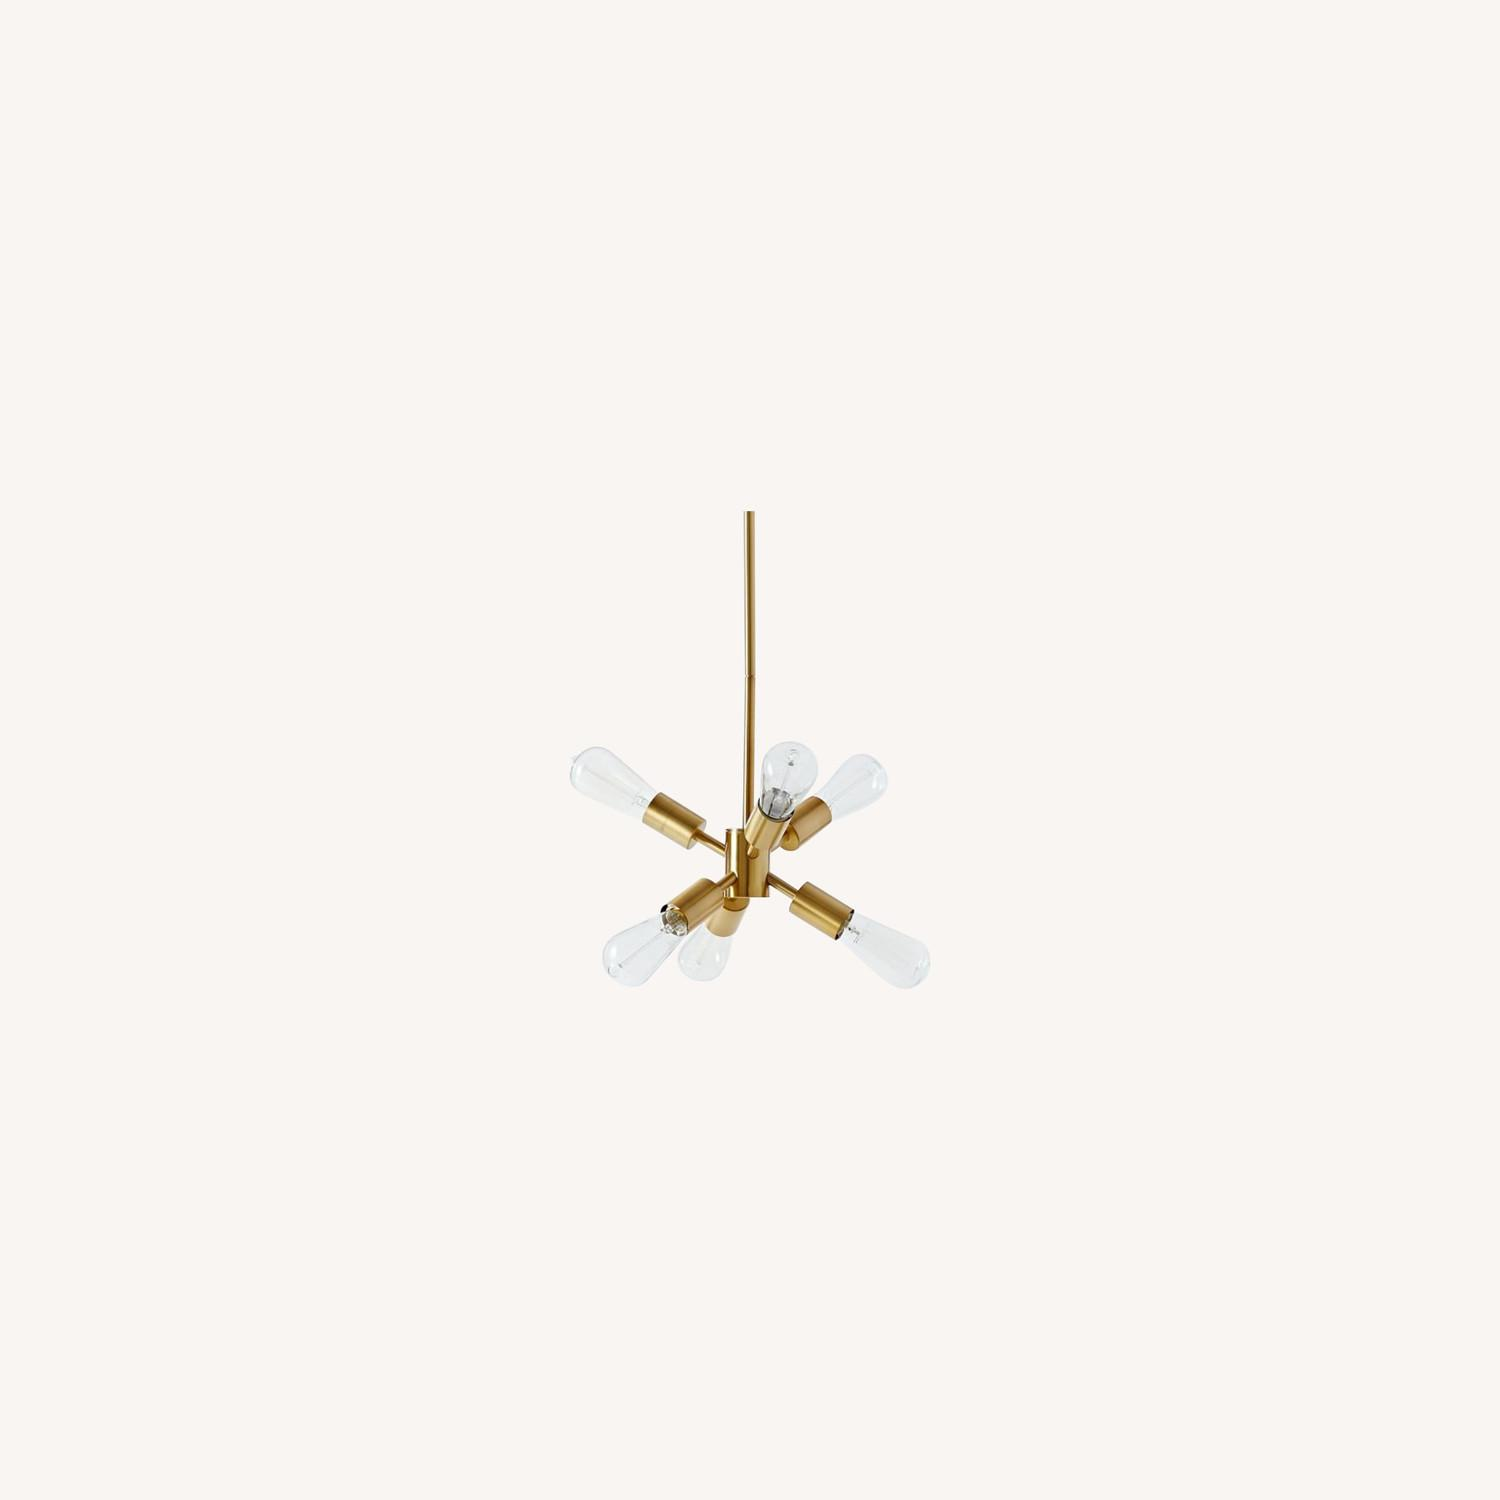 West Elm Mobile Chandelier - Small - image-0